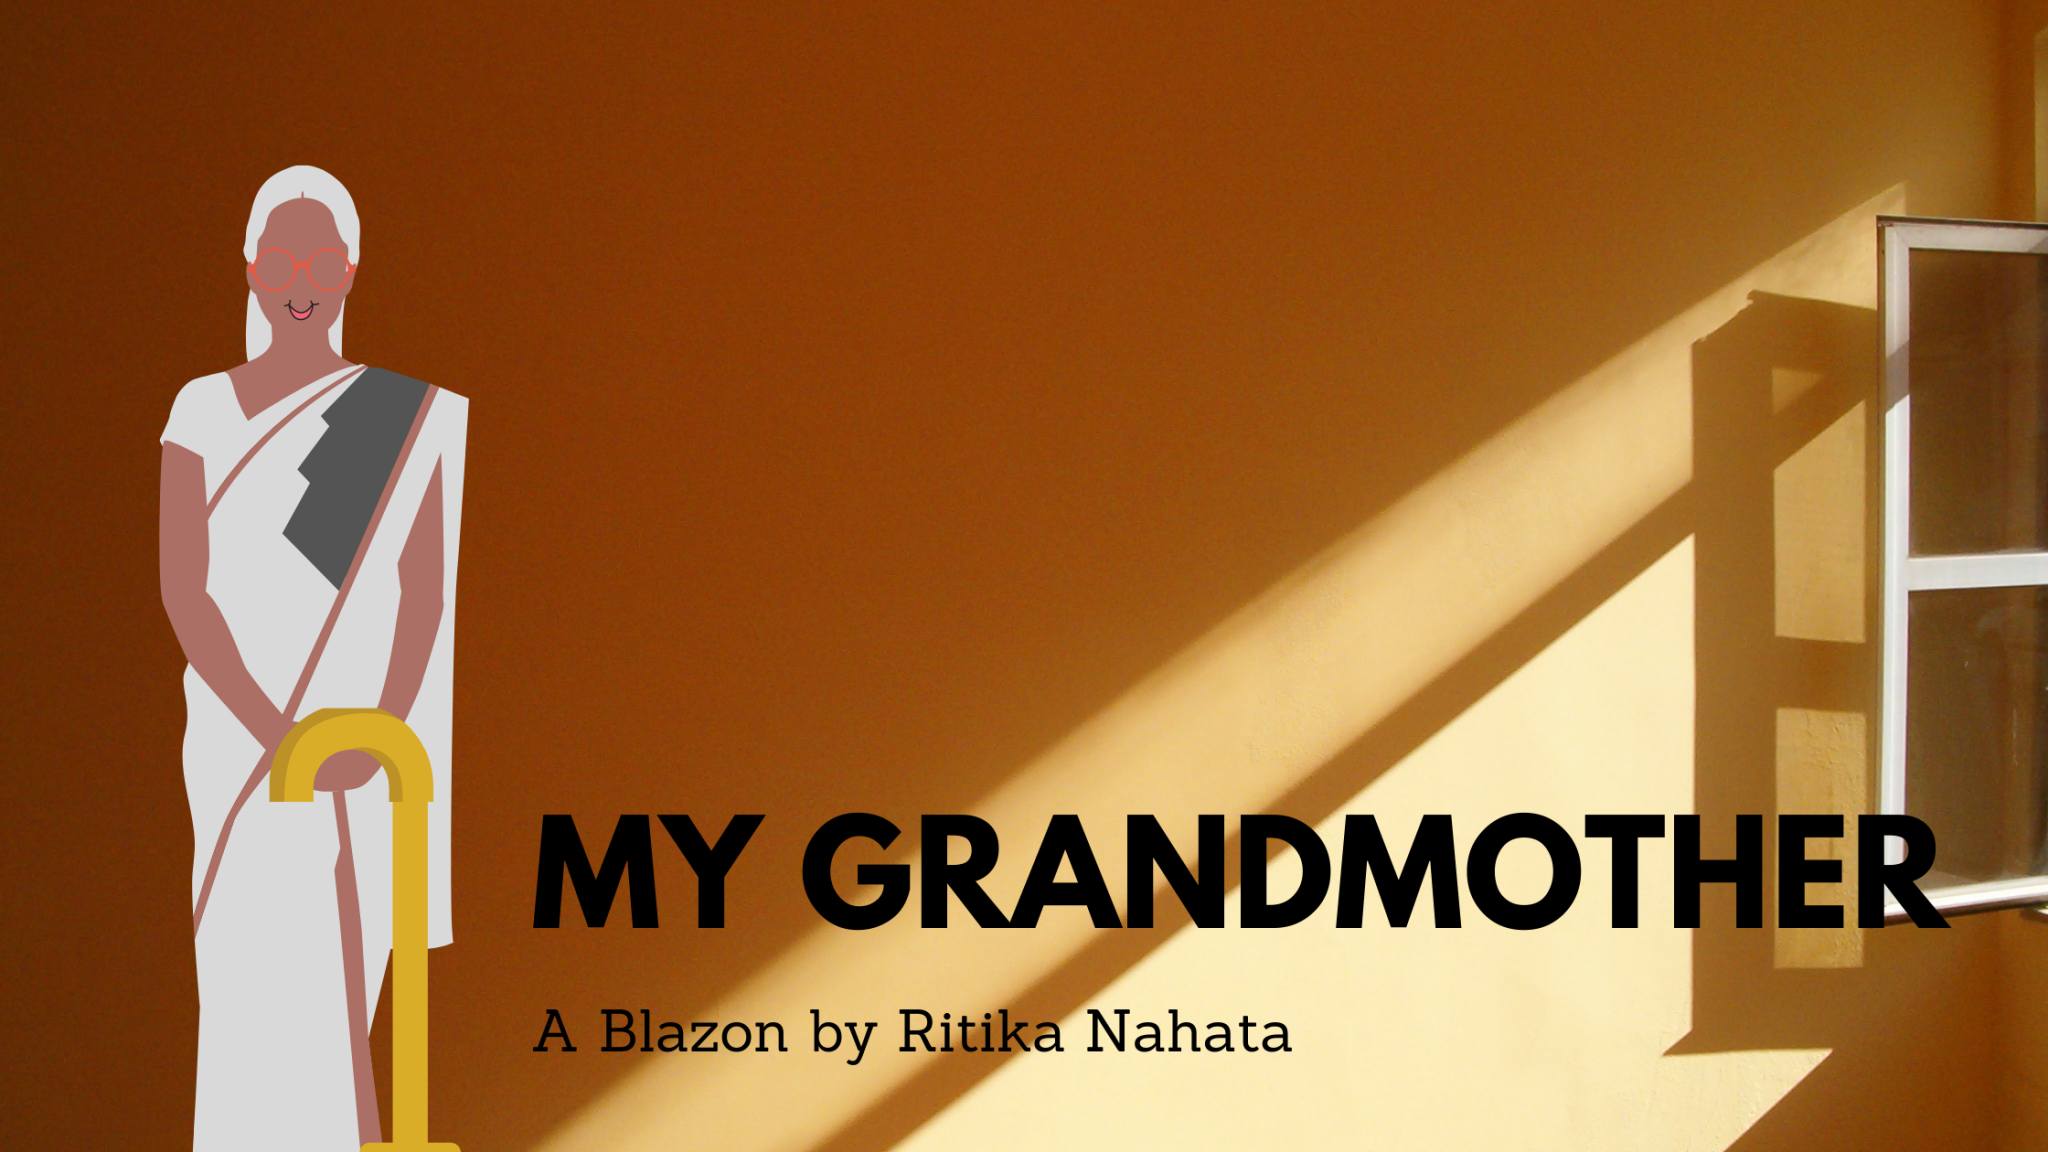 My Grandmother | A Blazon Poem by Ritika Nahata